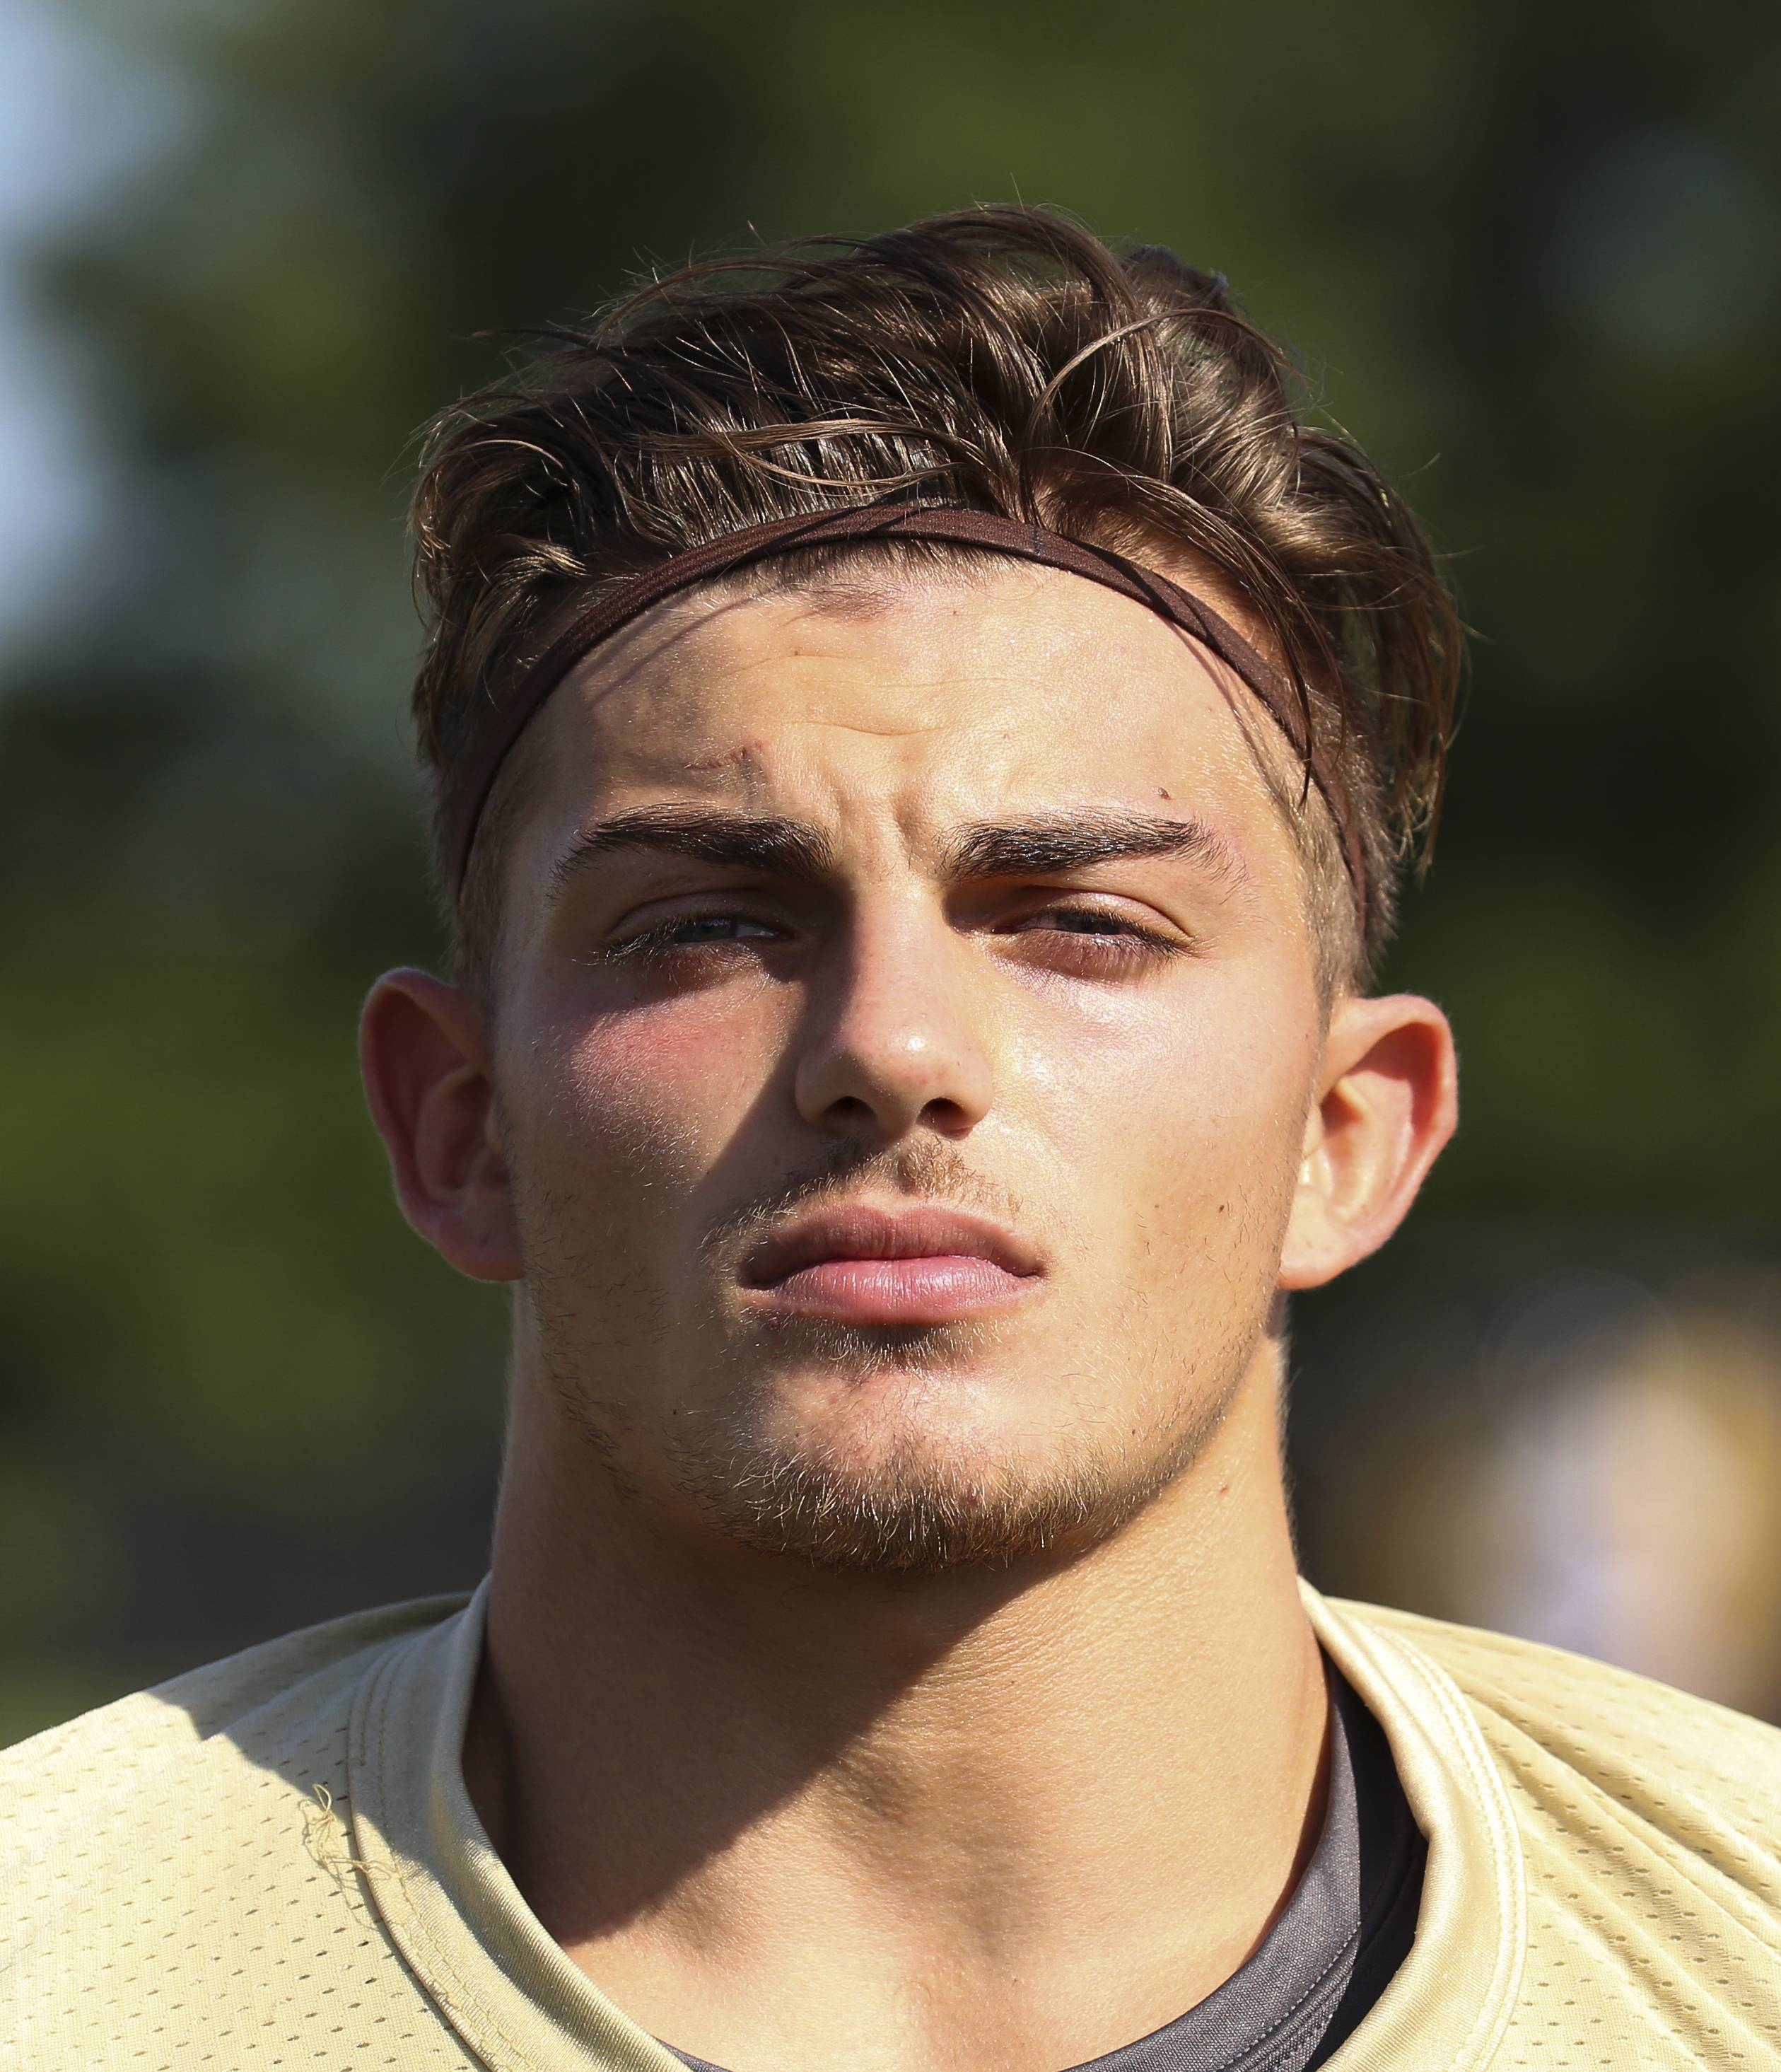 Bev Horne/bhorne@dailyherald.comVittorio Tricase of Glenbard North football.